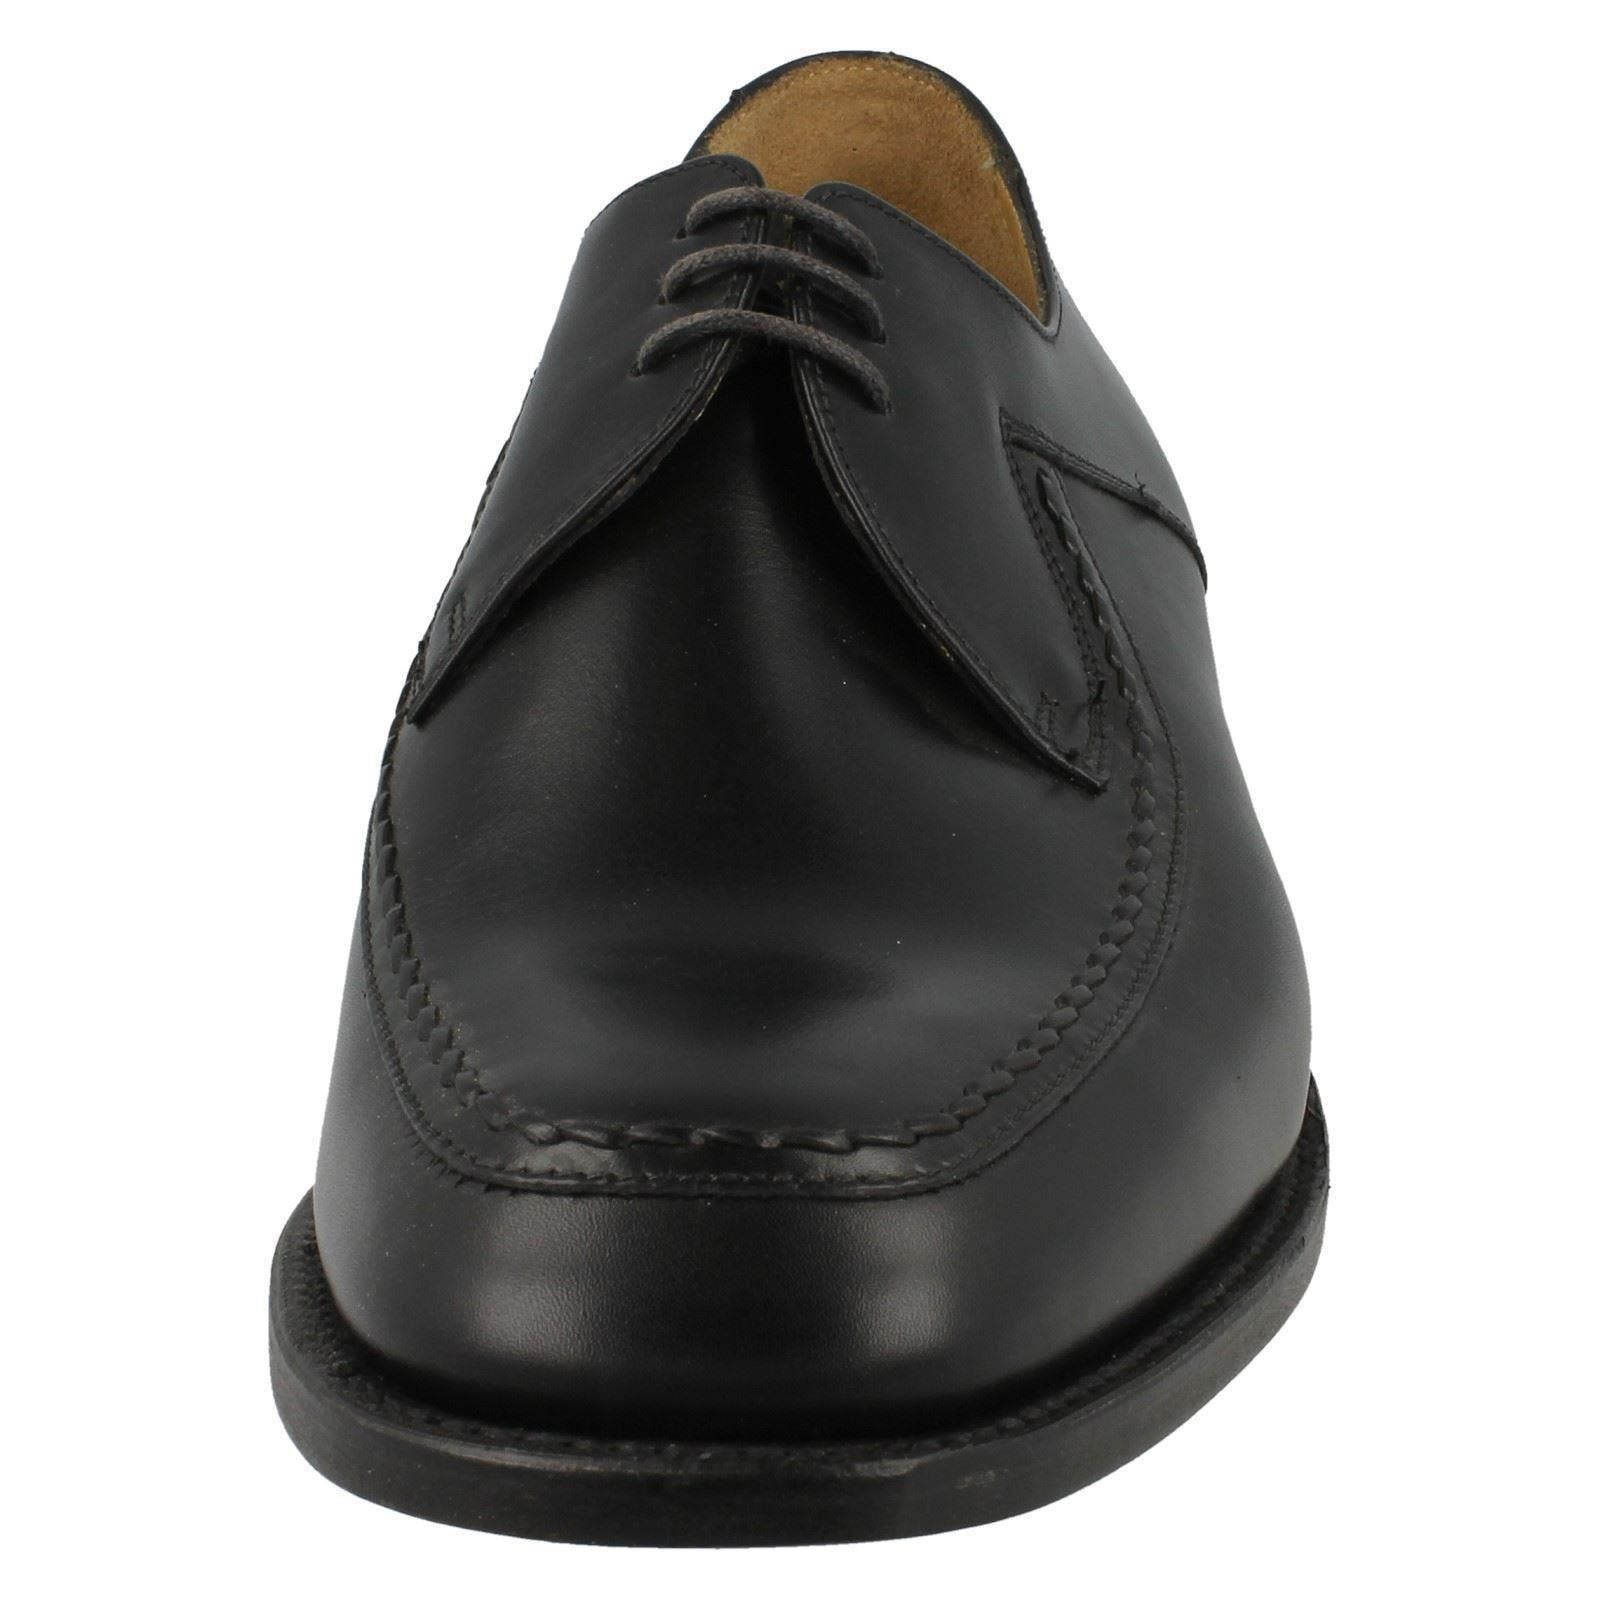 Mens Fitting Loake Formal Leder Schuhes Fitting Mens G - Fontwell 8e8db7